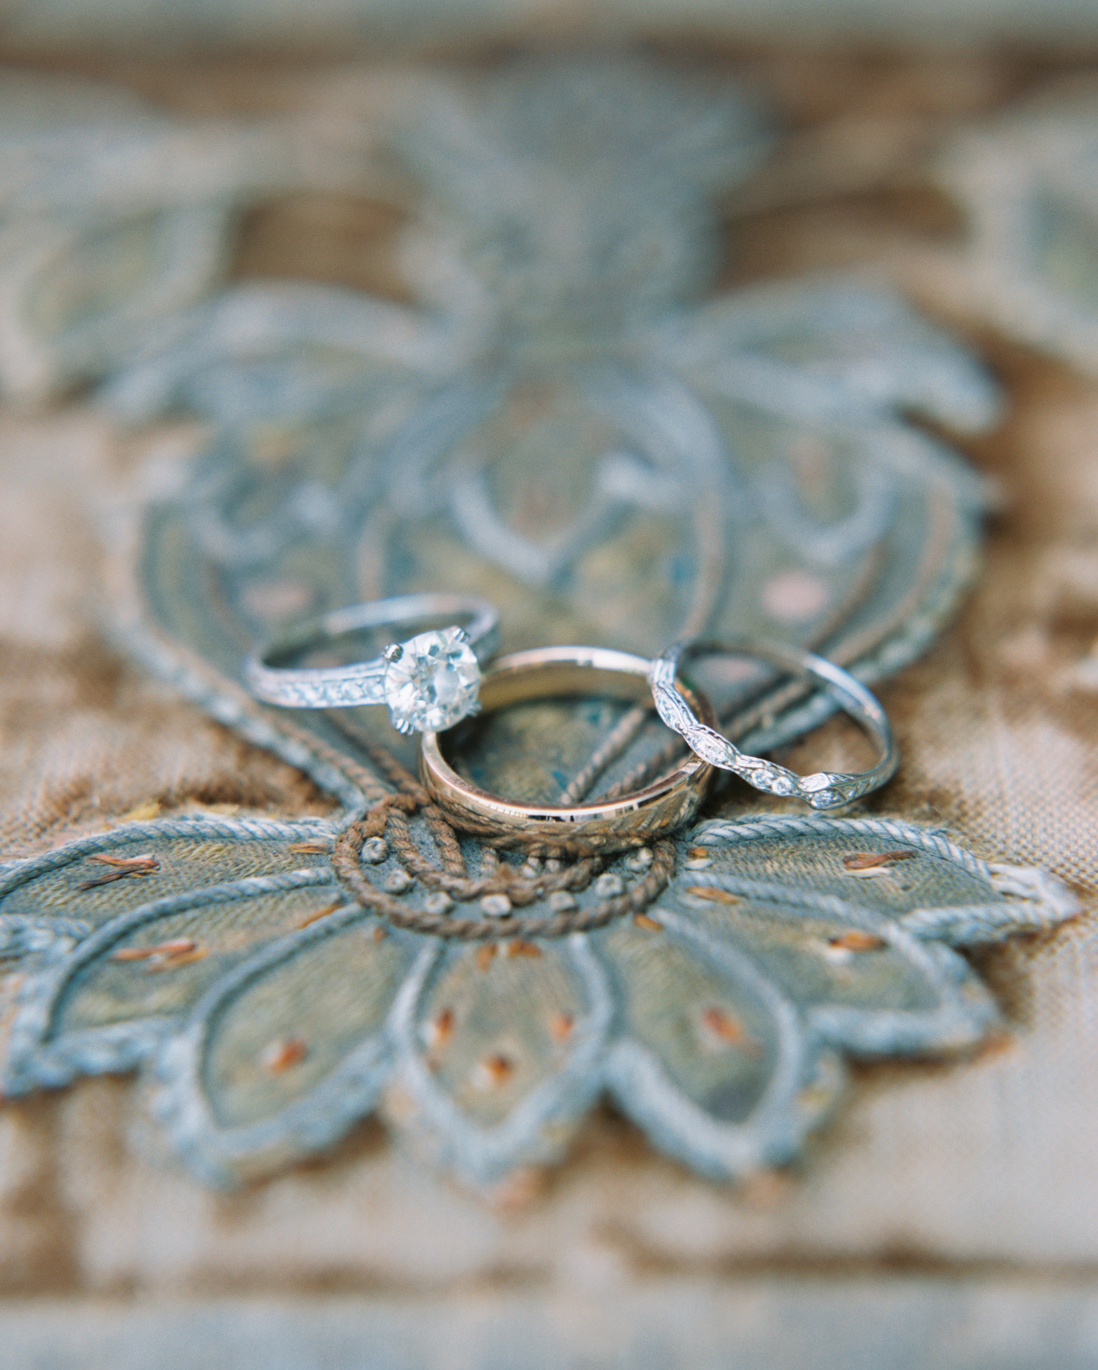 jessica-graham-wedding-rings-0039-s112171-0915.jpg